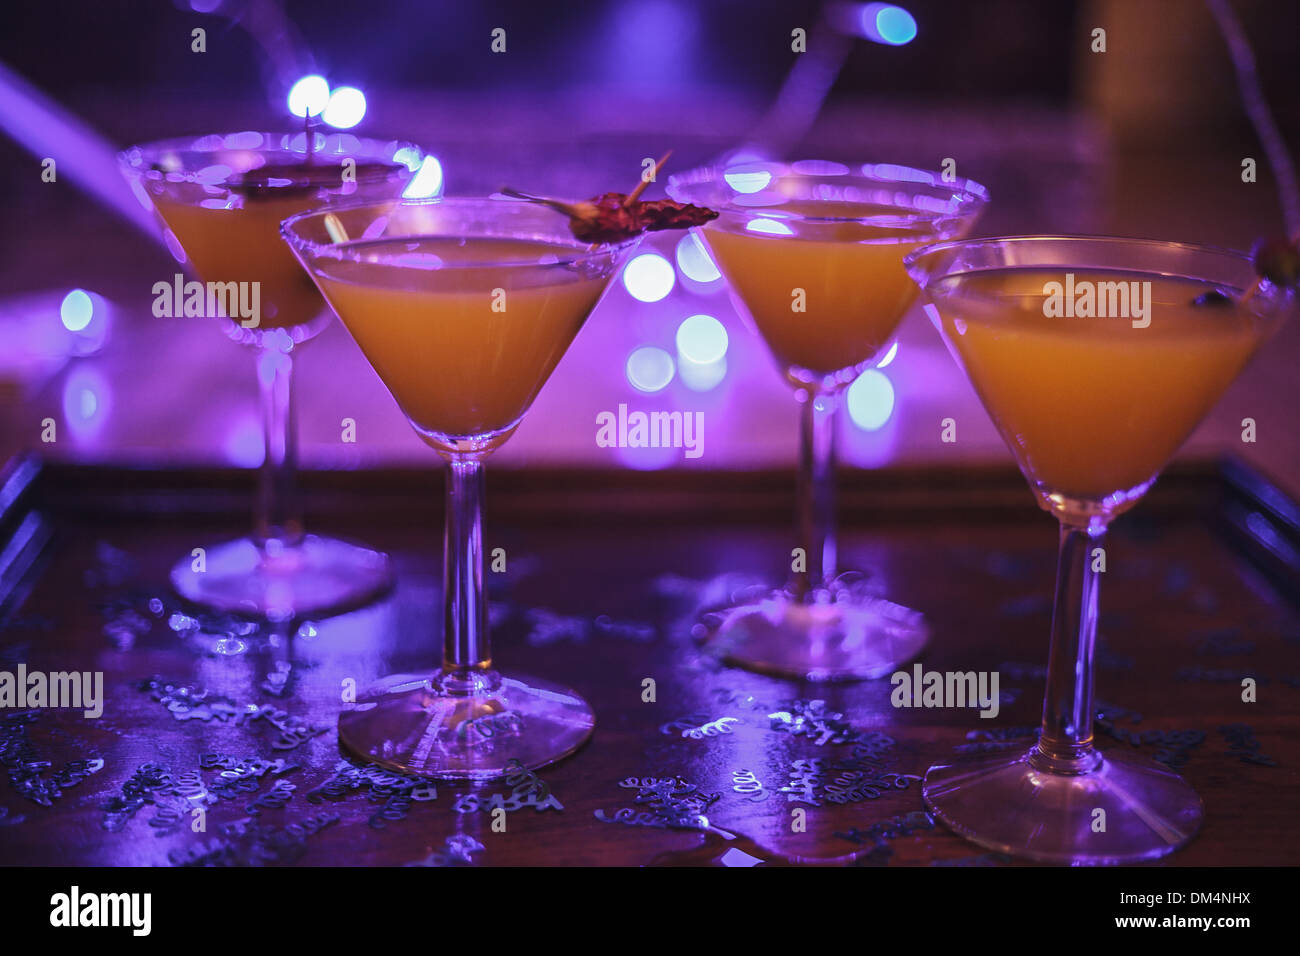 Festive cocktails. - Stock Image